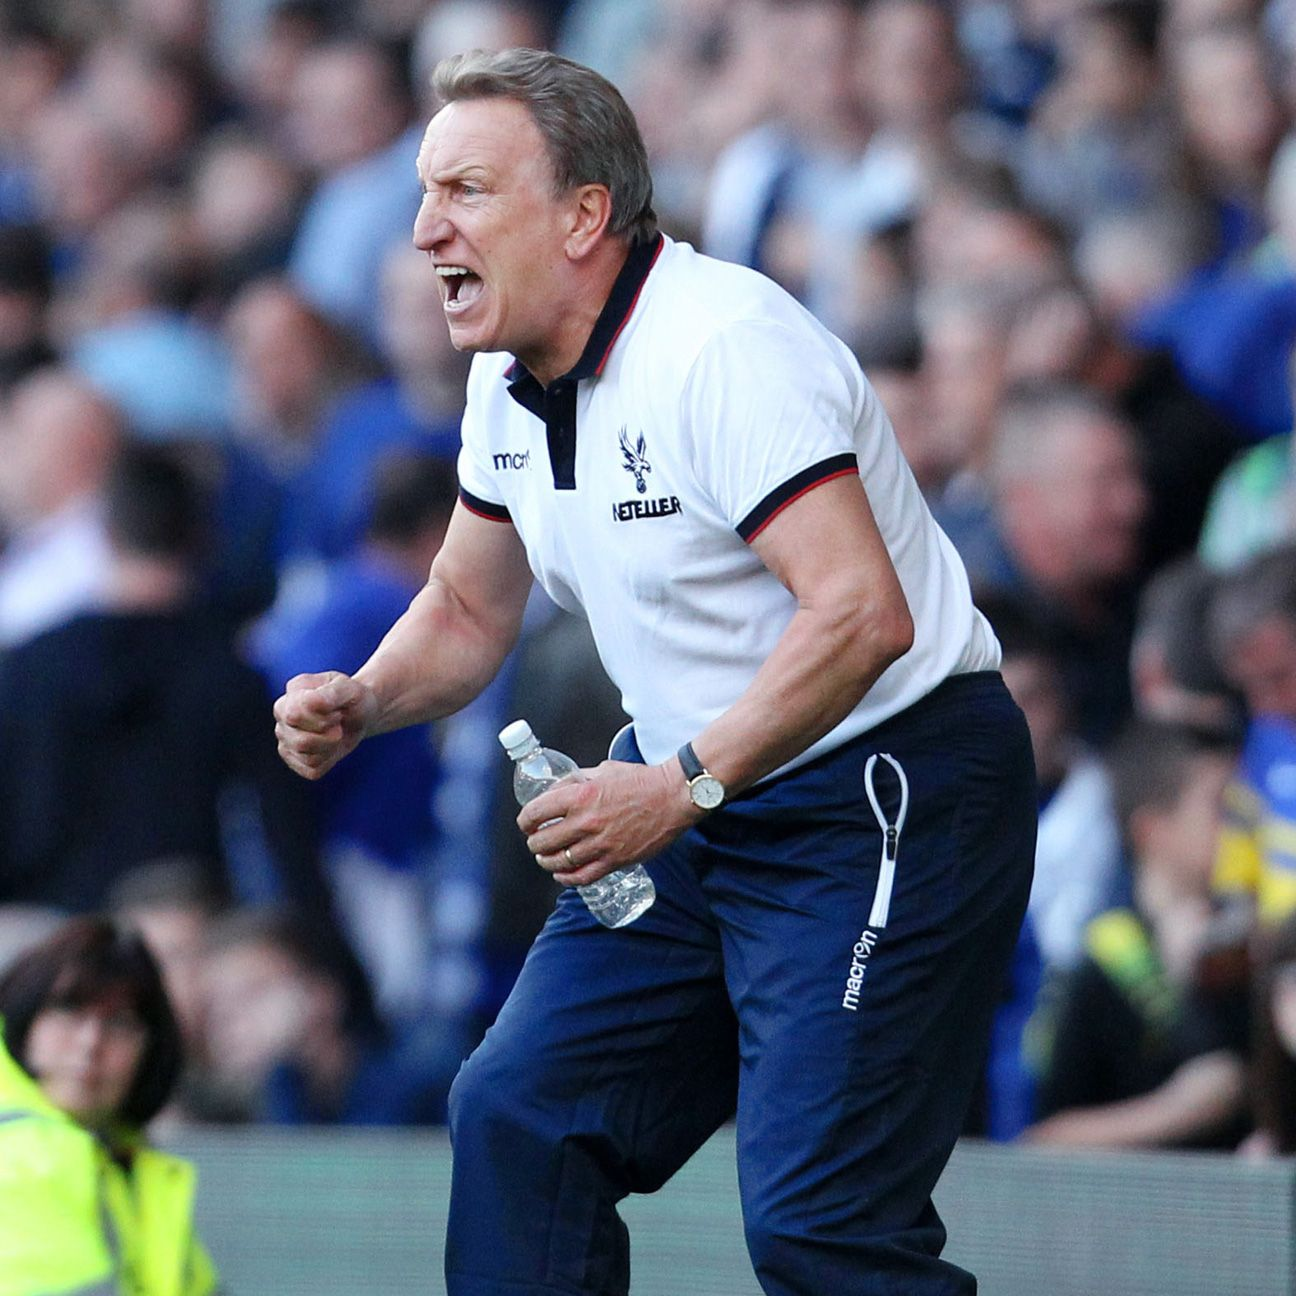 Crystal Palace manager Neil Warnock was fired up by his team's massive 3-2 victory at Goodison Park.